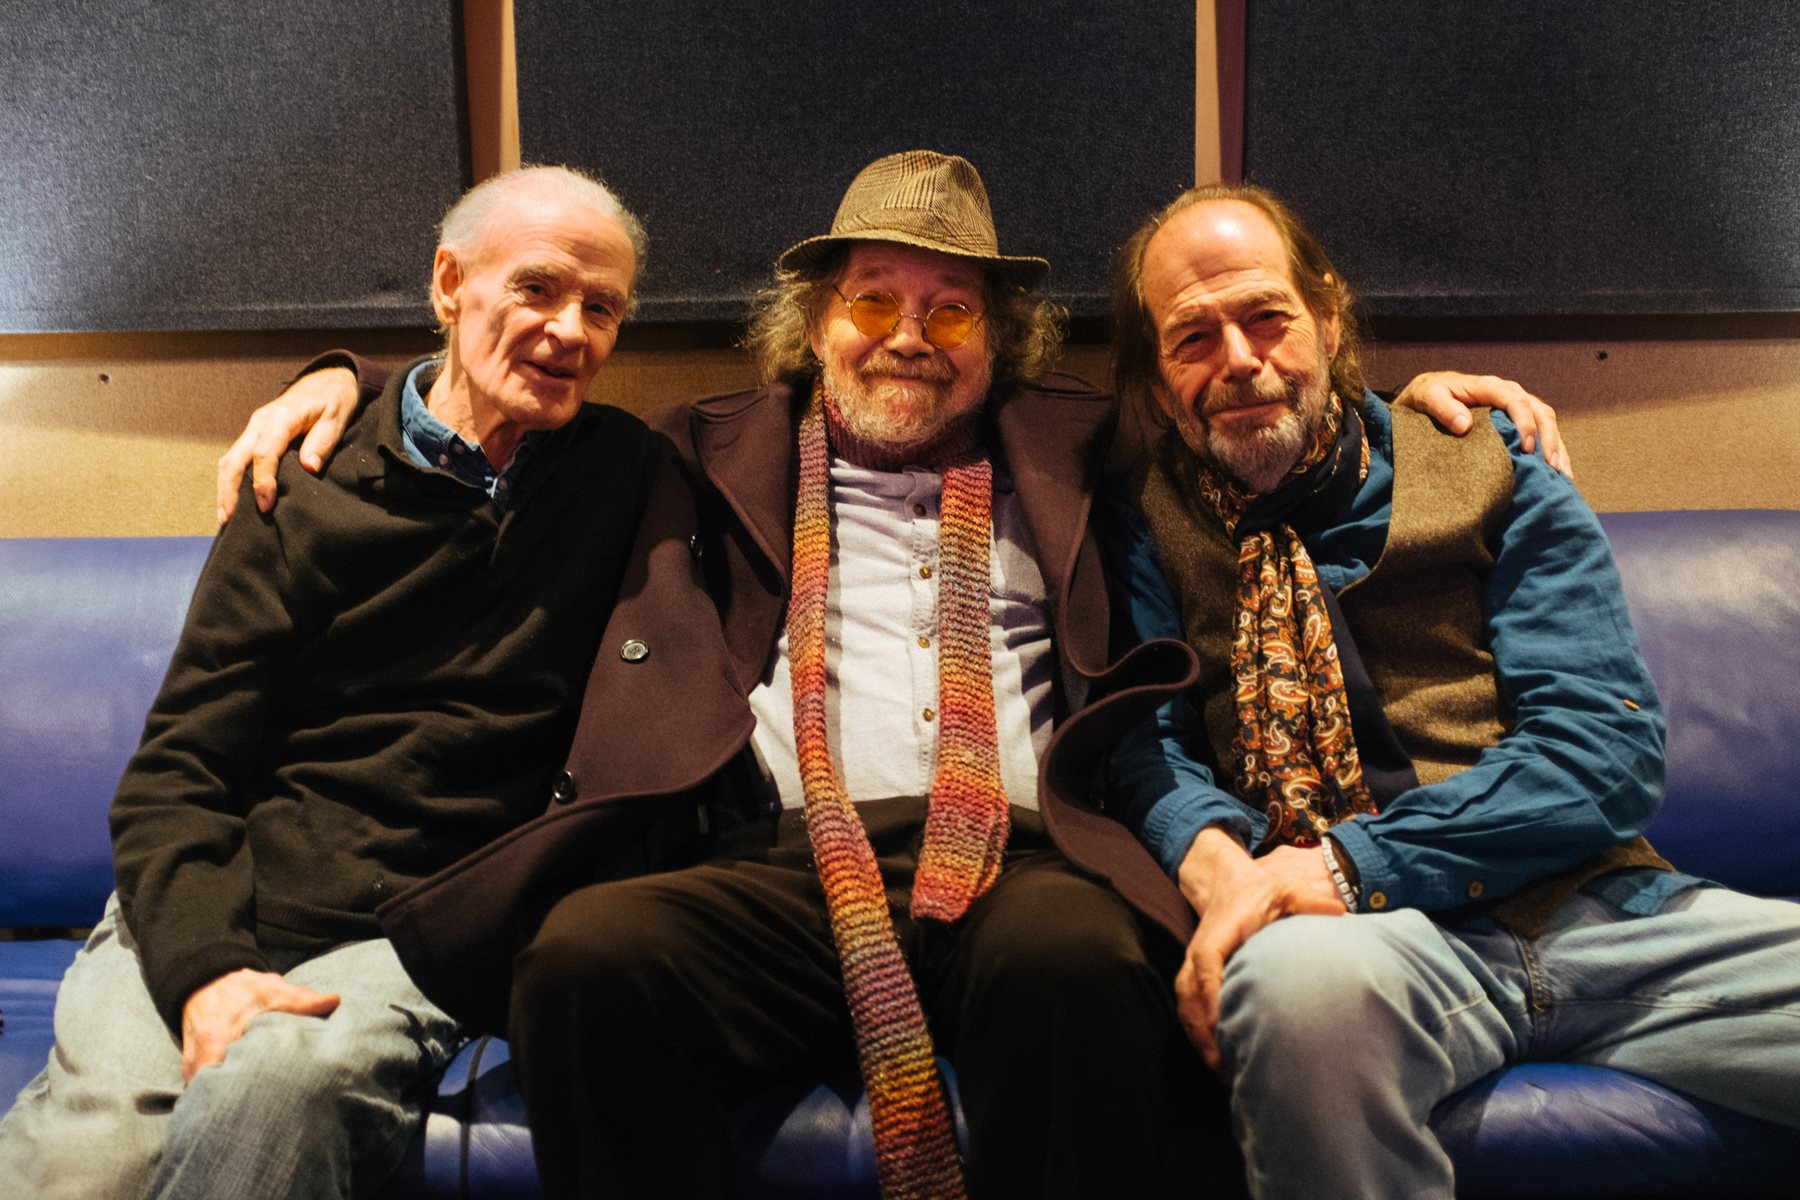 Bill-Fay-Alan-Rushton-and-me.-Bills-new-Album-Braanched-everywhere.